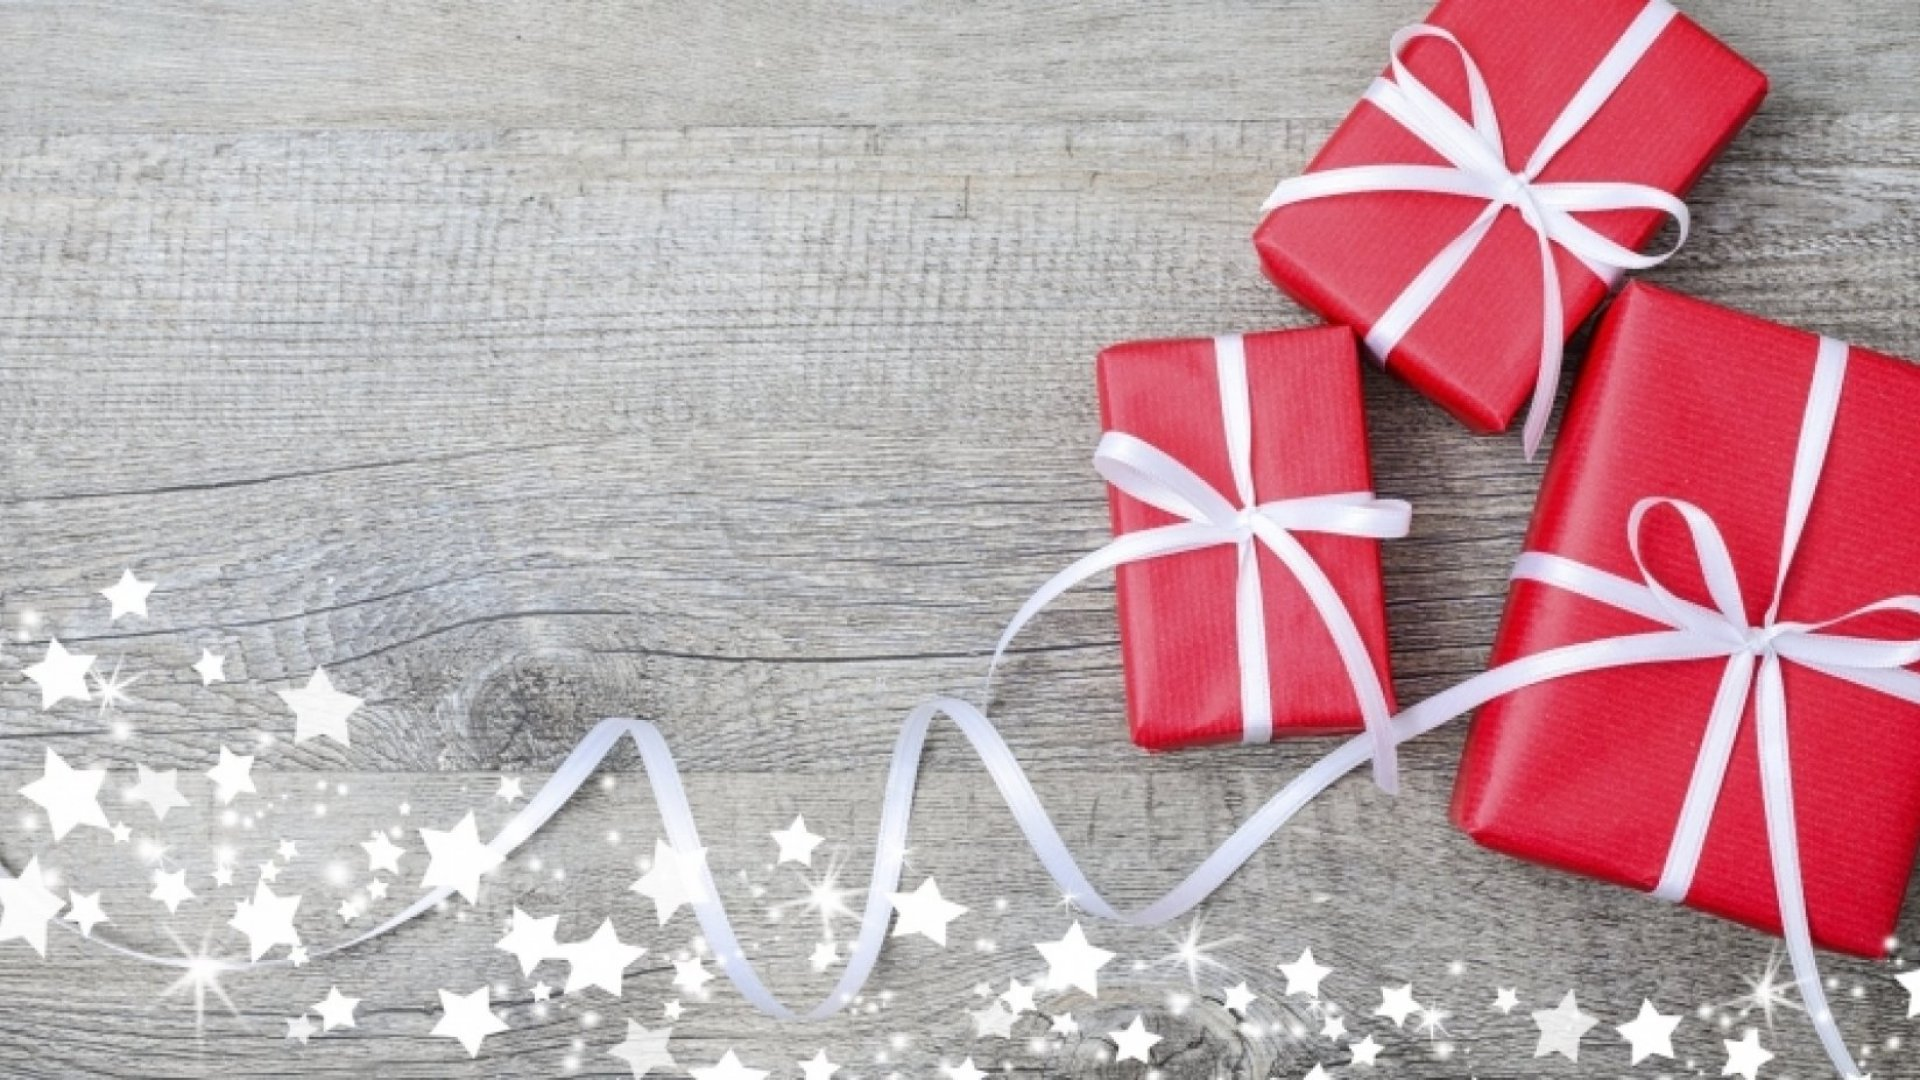 5 Ways to Create Successful Opportunities During the Holiday Season